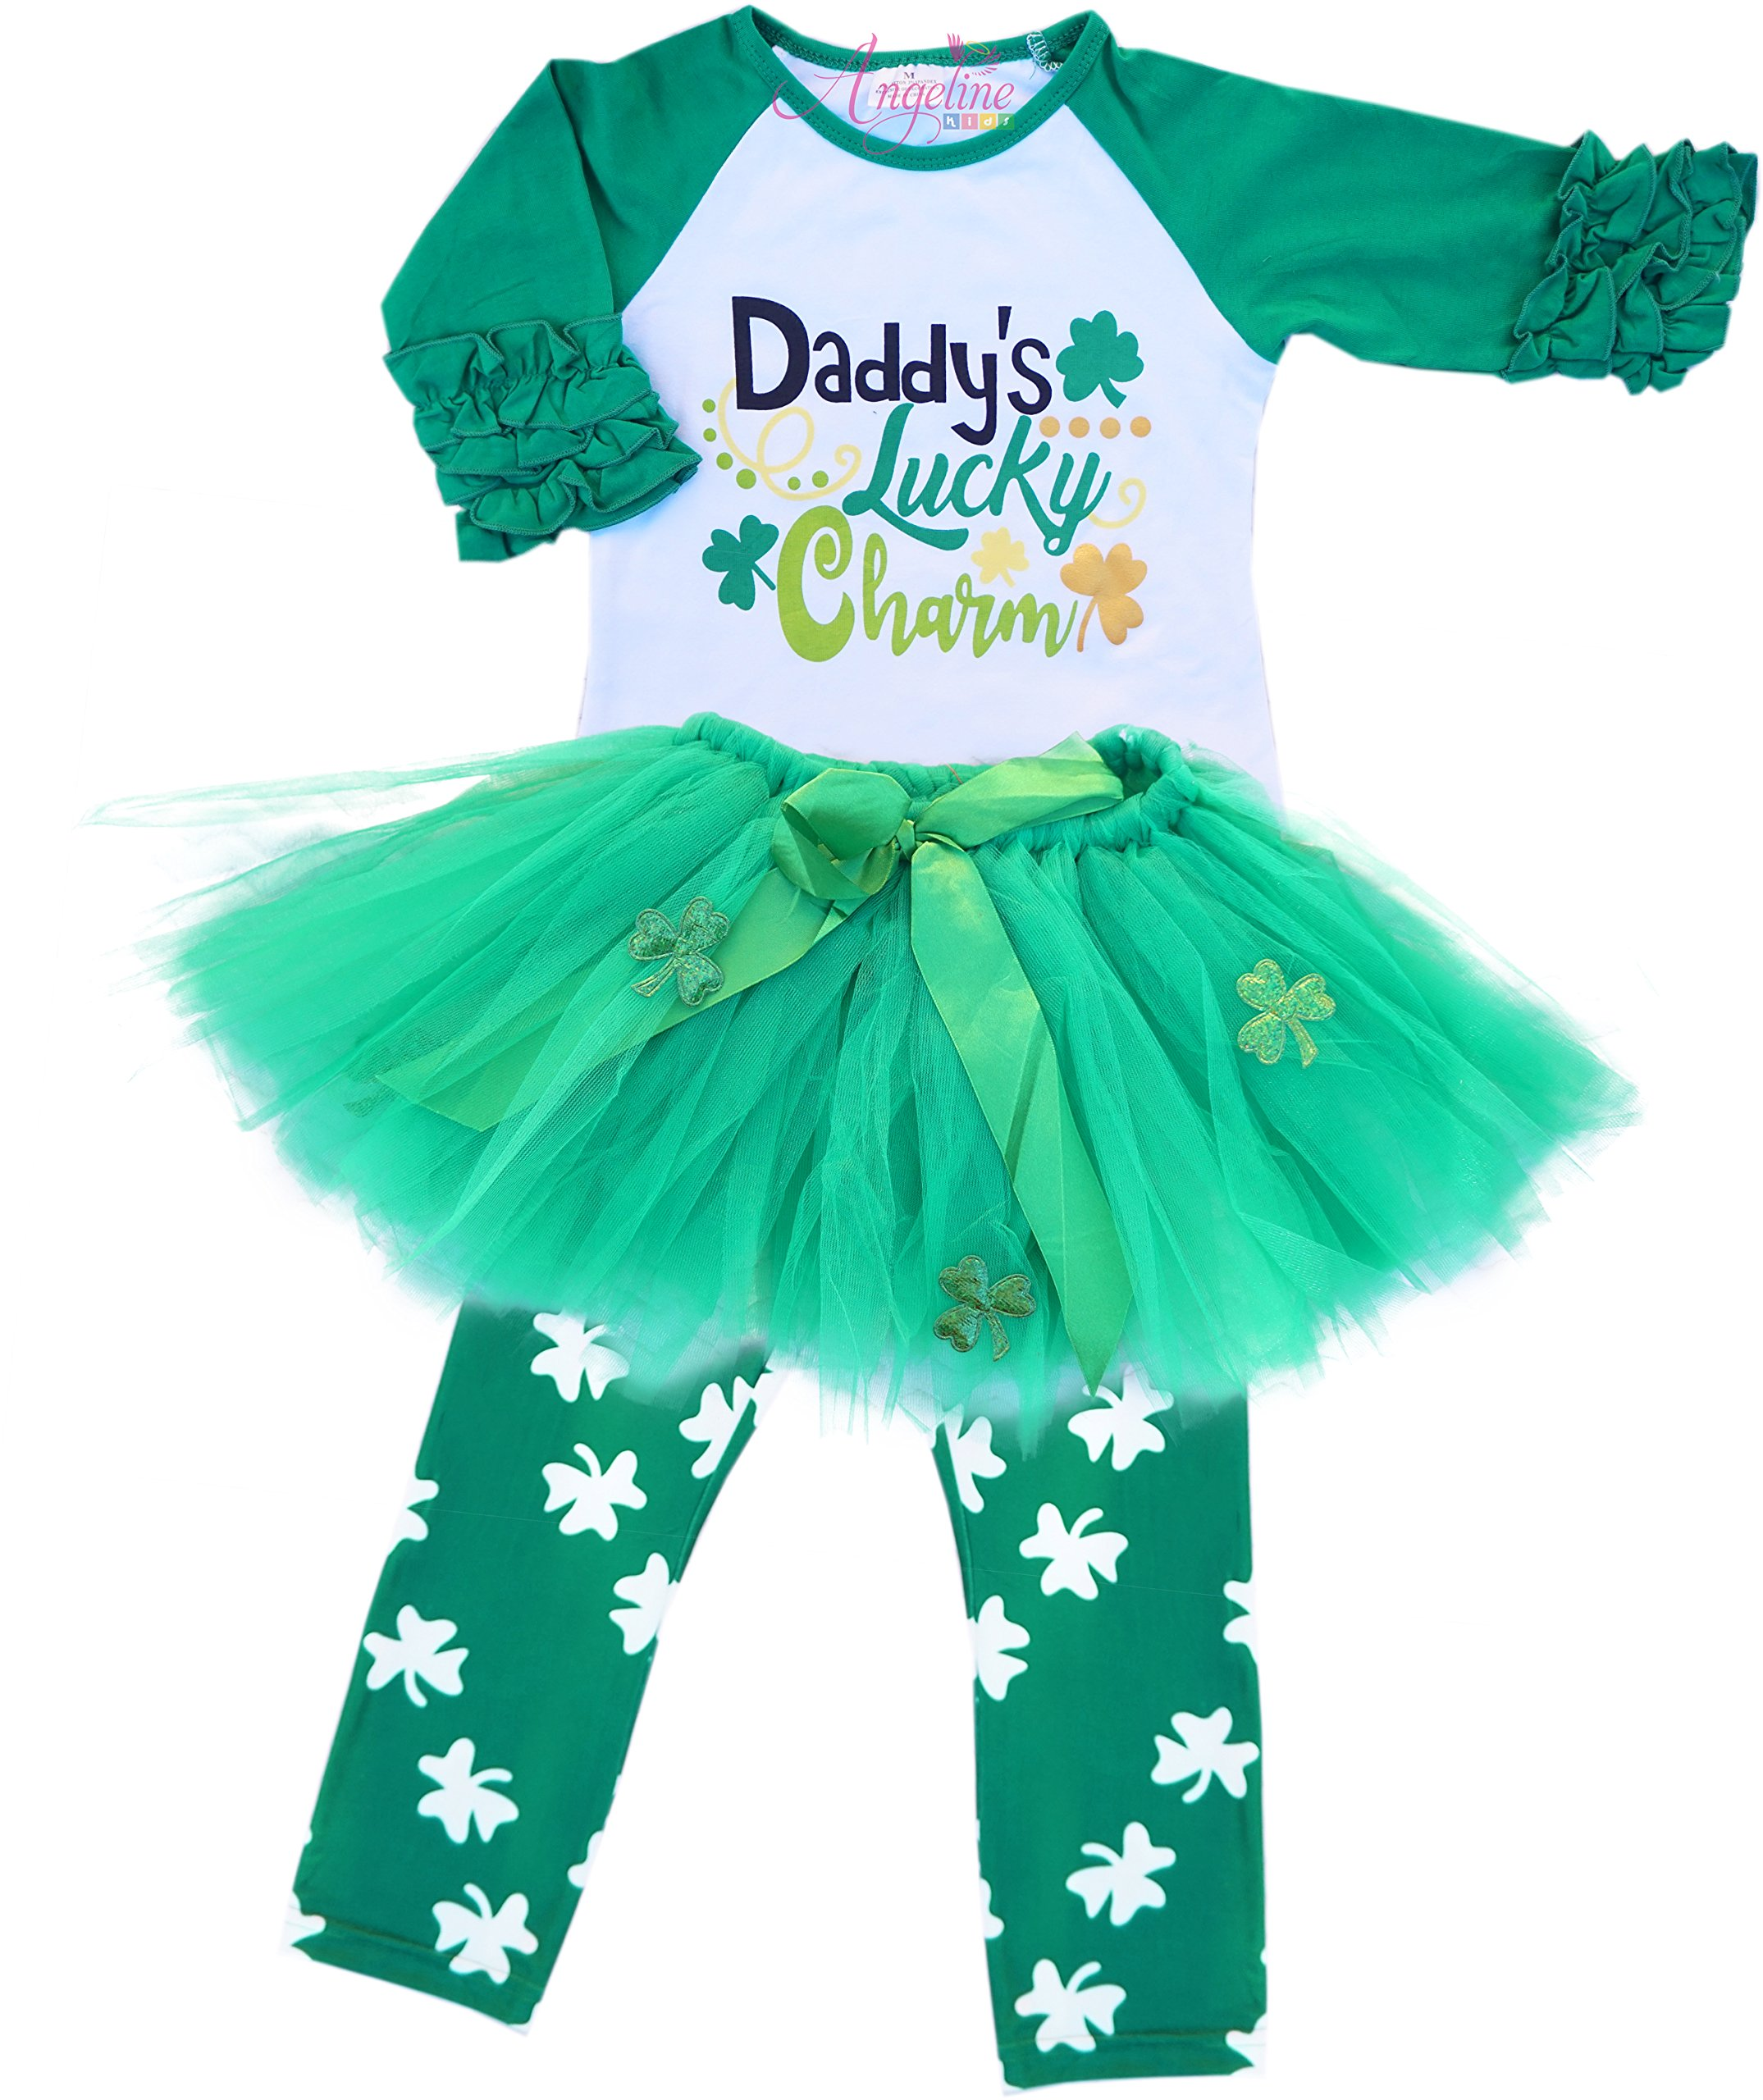 Angeline Girls ST Patrick's Day Daddy Lucky Charm Ruffles Shirt Skirt Set 6/XL